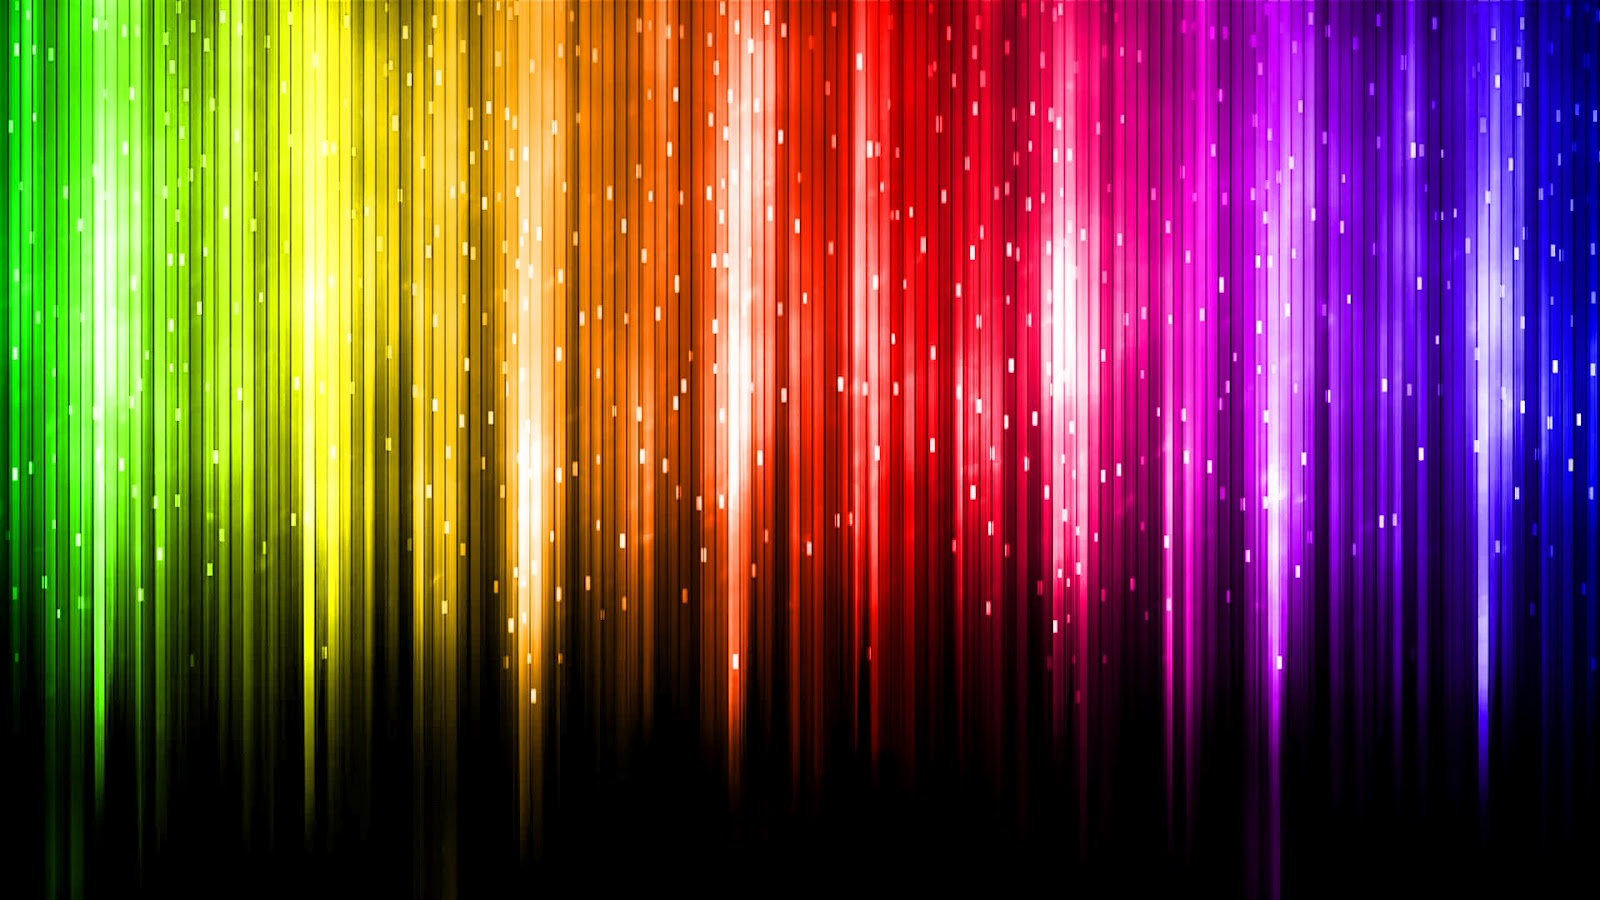 Wallpaper and image 30 colorful abstract wallpapers full hd 1080p - Colorful background hd ...